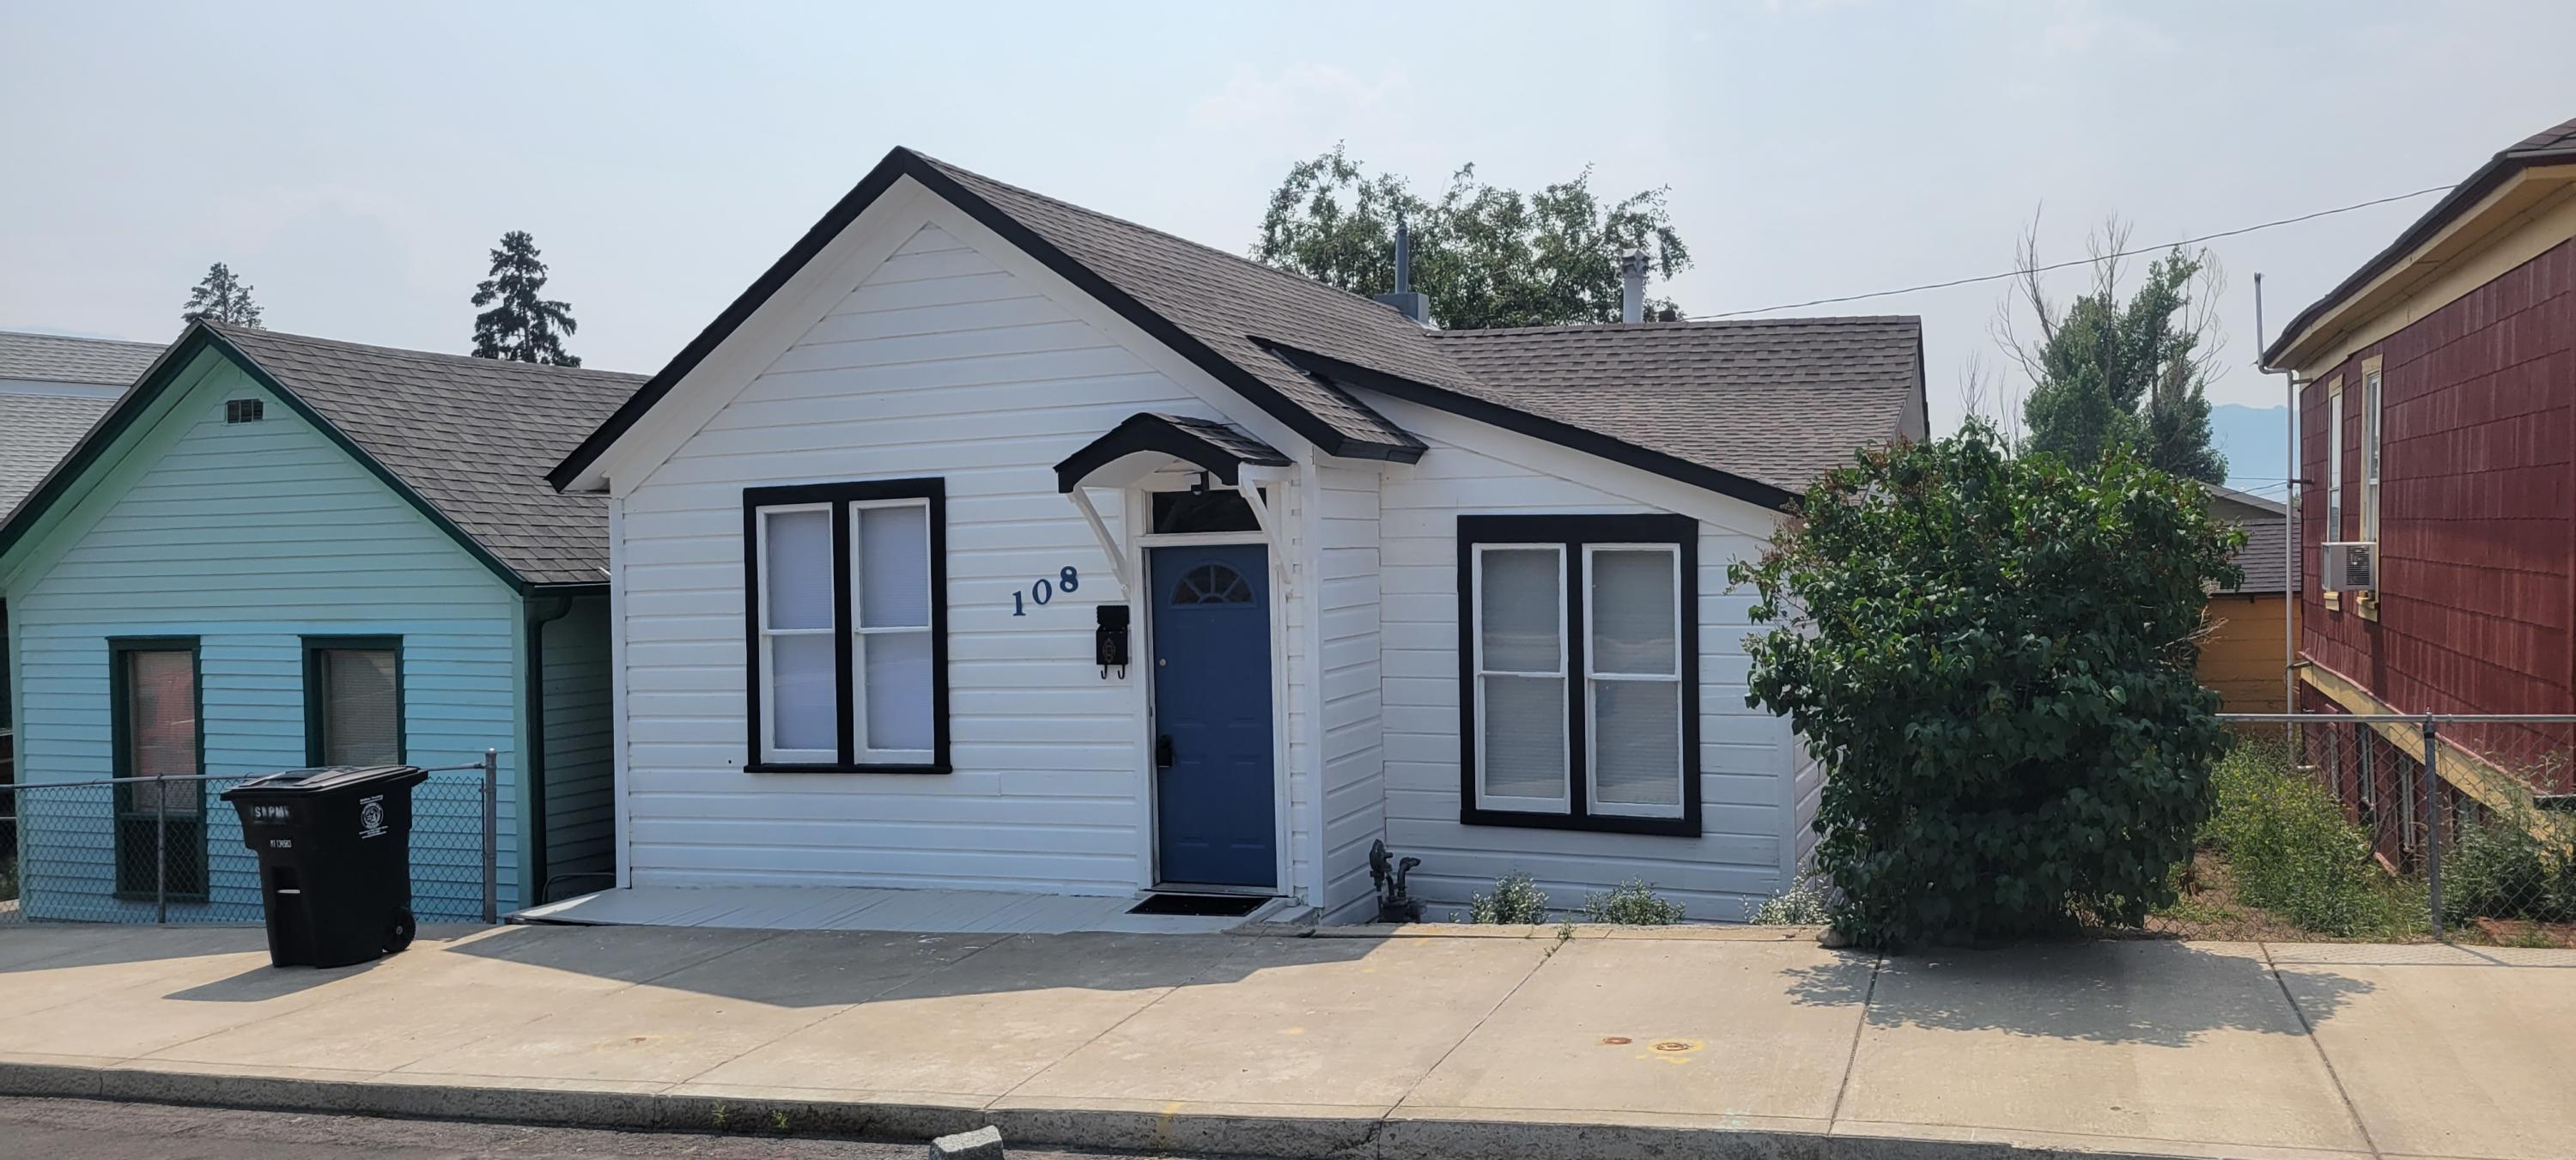 Cutest home in Butte! All of the hard work has been done to restore this 1900 gem. This is a move-in ready 2-bed, 1 bath with new roof, major foundation work completed, new furnace, updated kitchen and bathroom, fresh paint, and too much more to list. This home's central location provides quick access to many different parts of Butte. Just a few minutes to Uptown Butte, the university, the hospital, Interstate 90, the Continental Divide Trail, and more.Separate laundry room. All appliances included! Peaceful back deck and easy maintenance yard provide for easy living. Don't miss out on this beautiful home! Call Robert Medof at 406-203-7621 or your real estate professional.